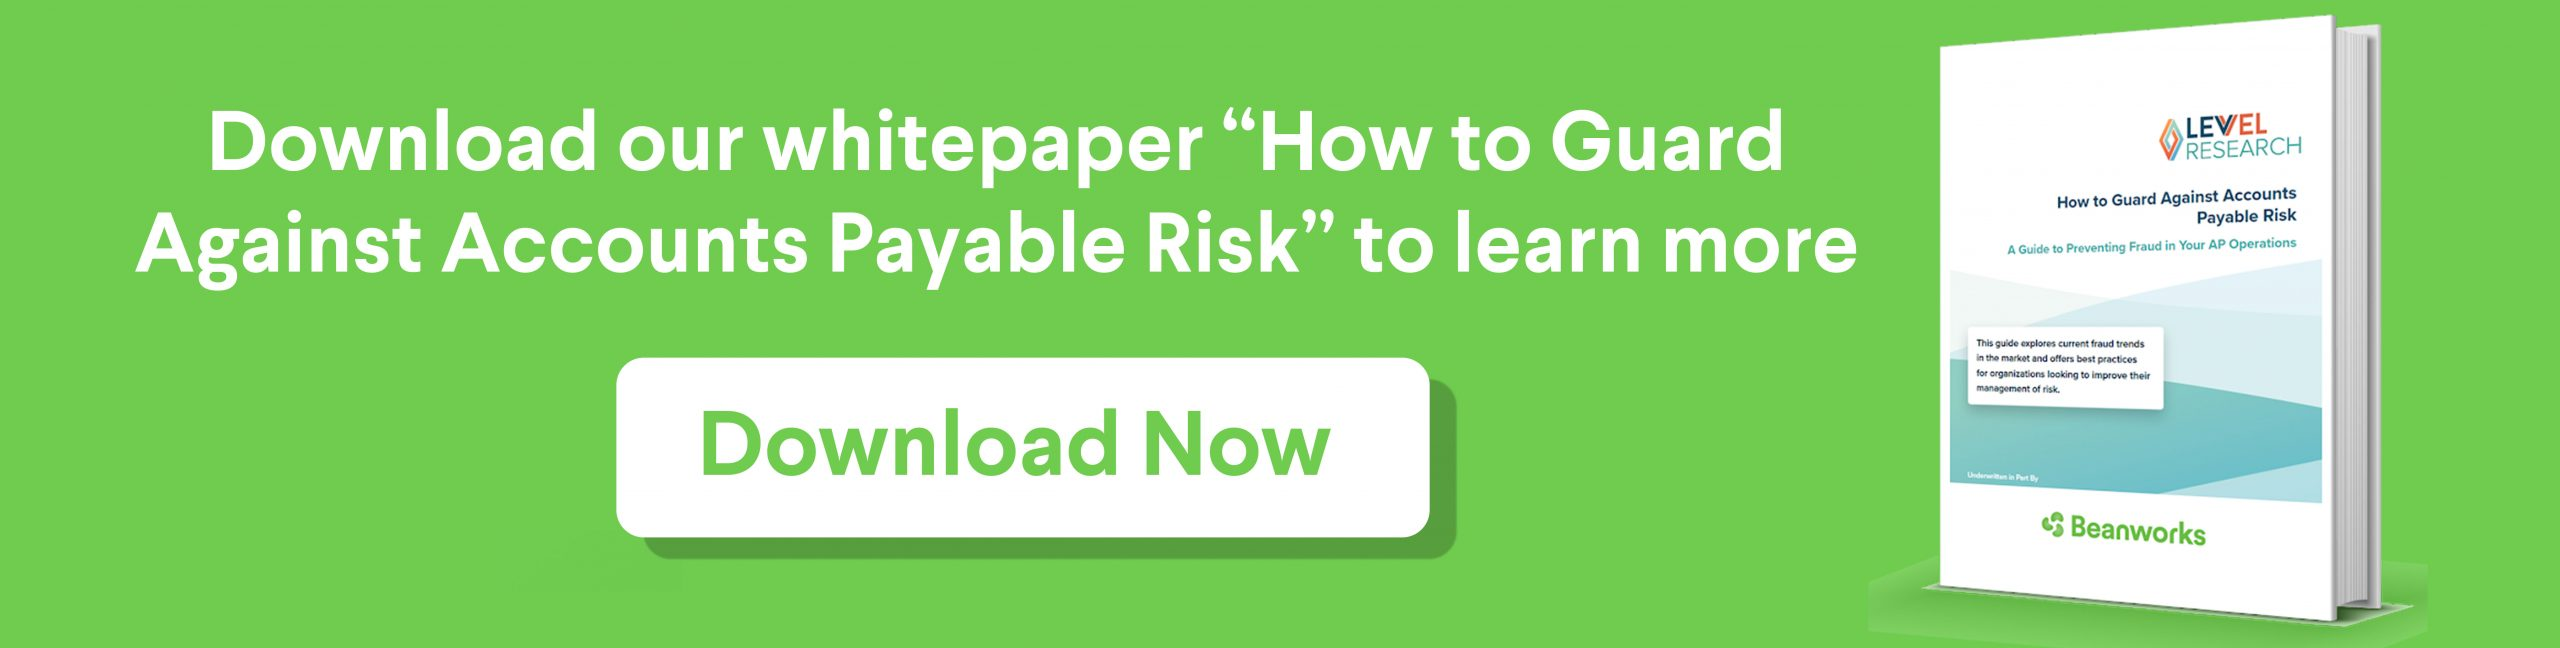 download whitepaper how to guard against accounts payable risk